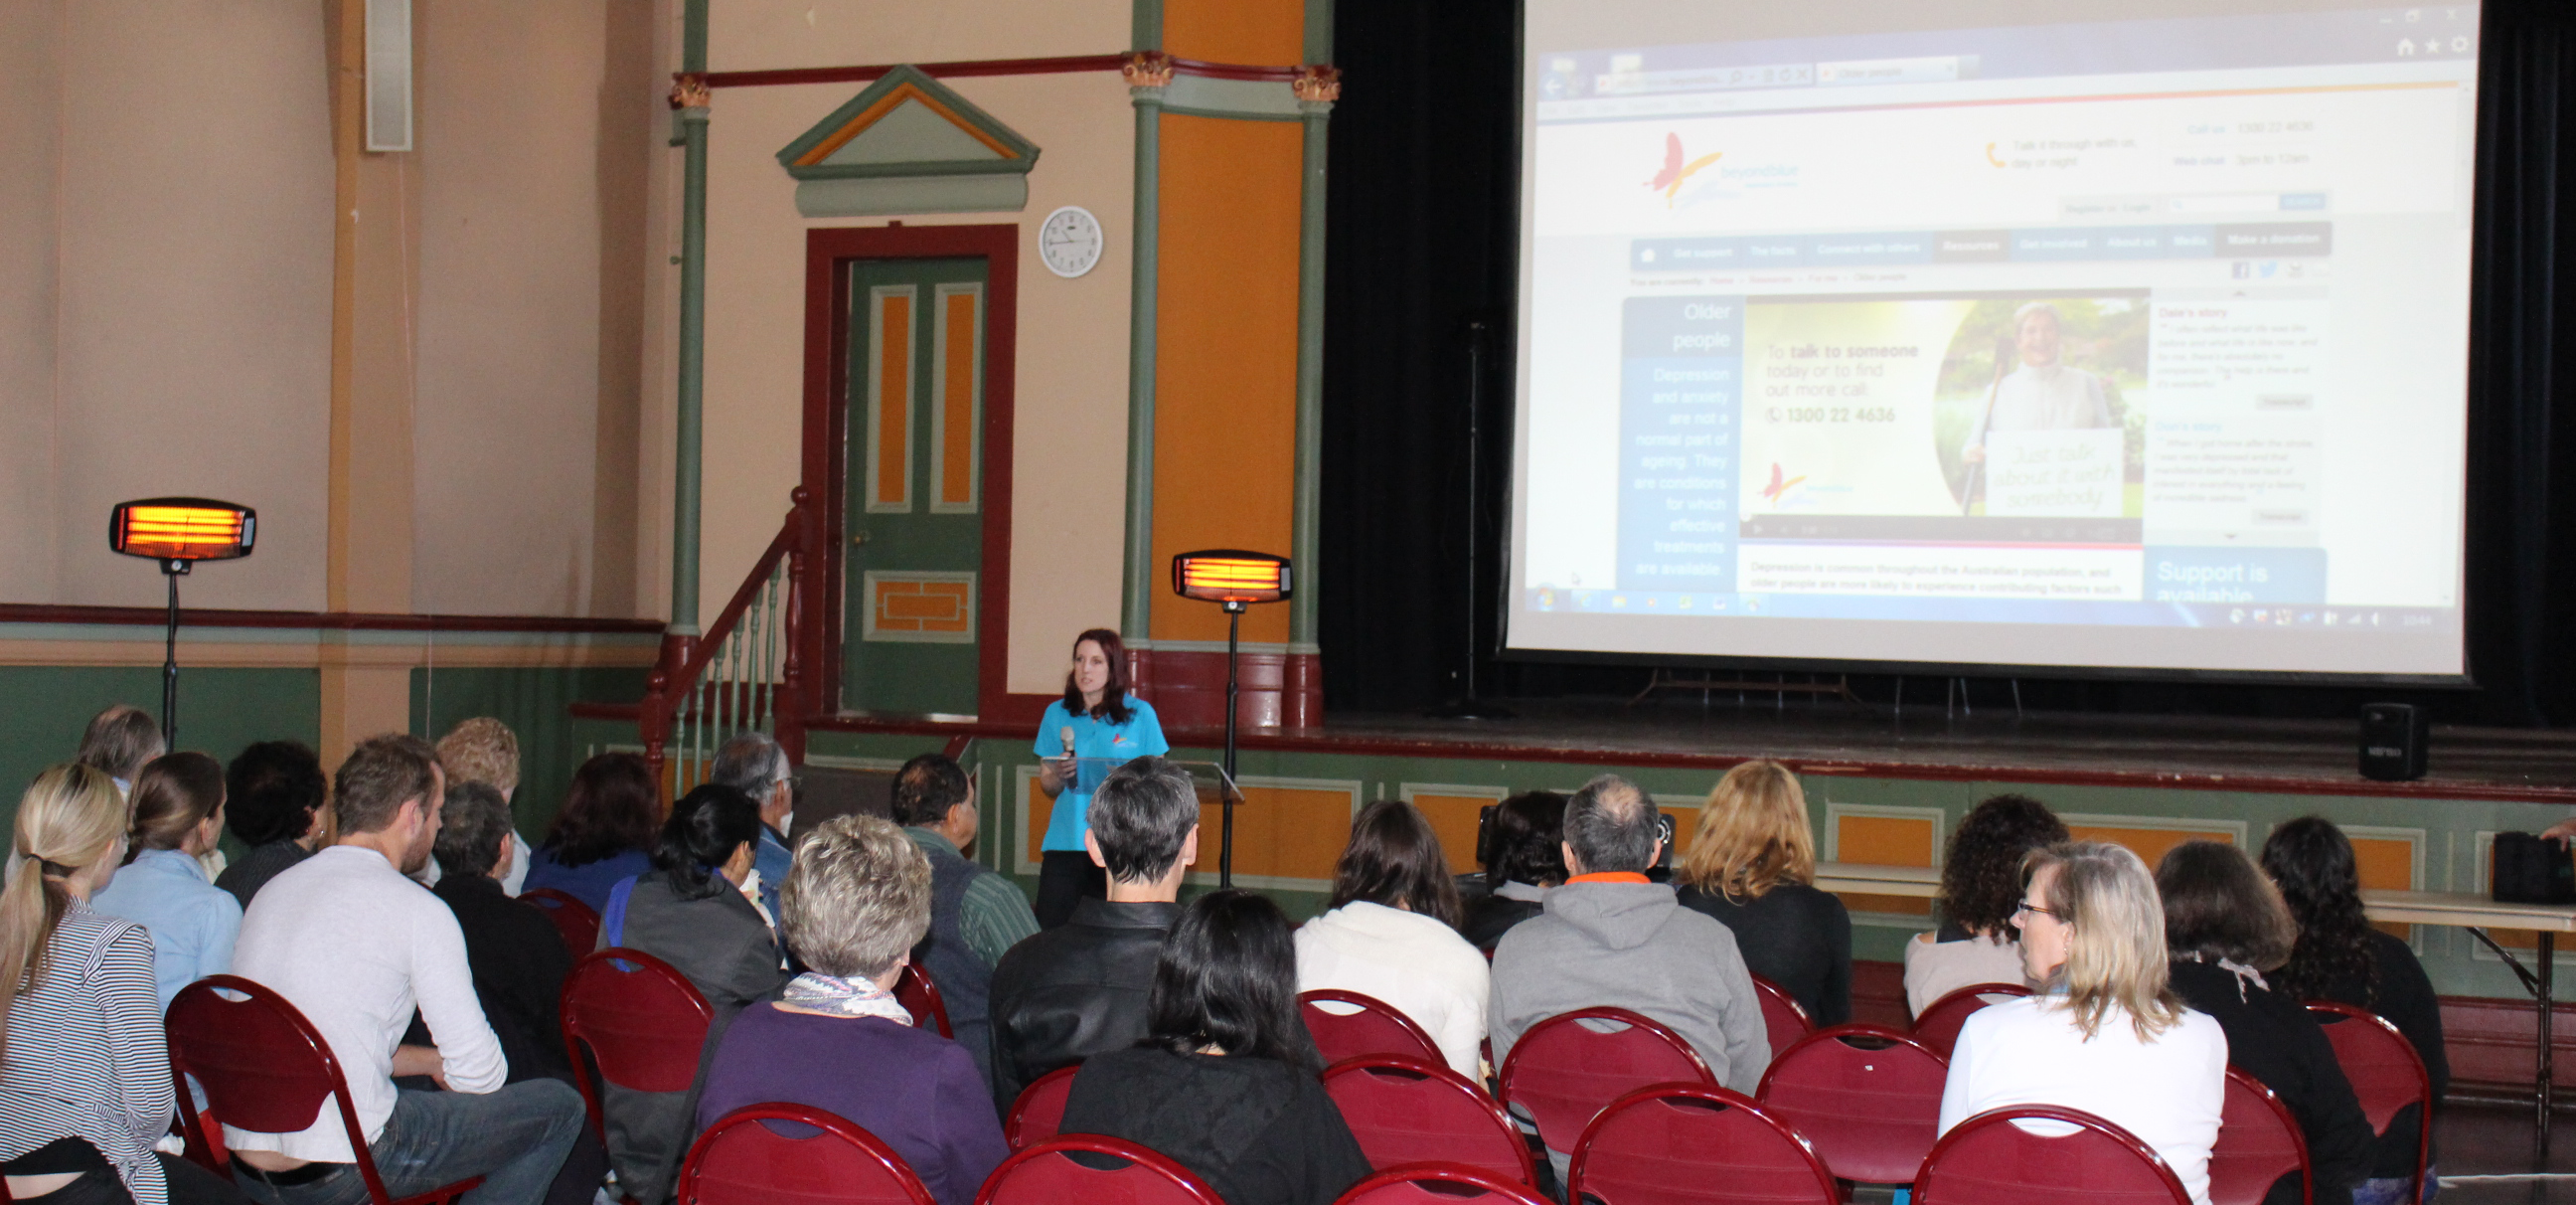 Beyond Blue's Catherine talks about mental health and ageing at Leichhardt Town Hall.